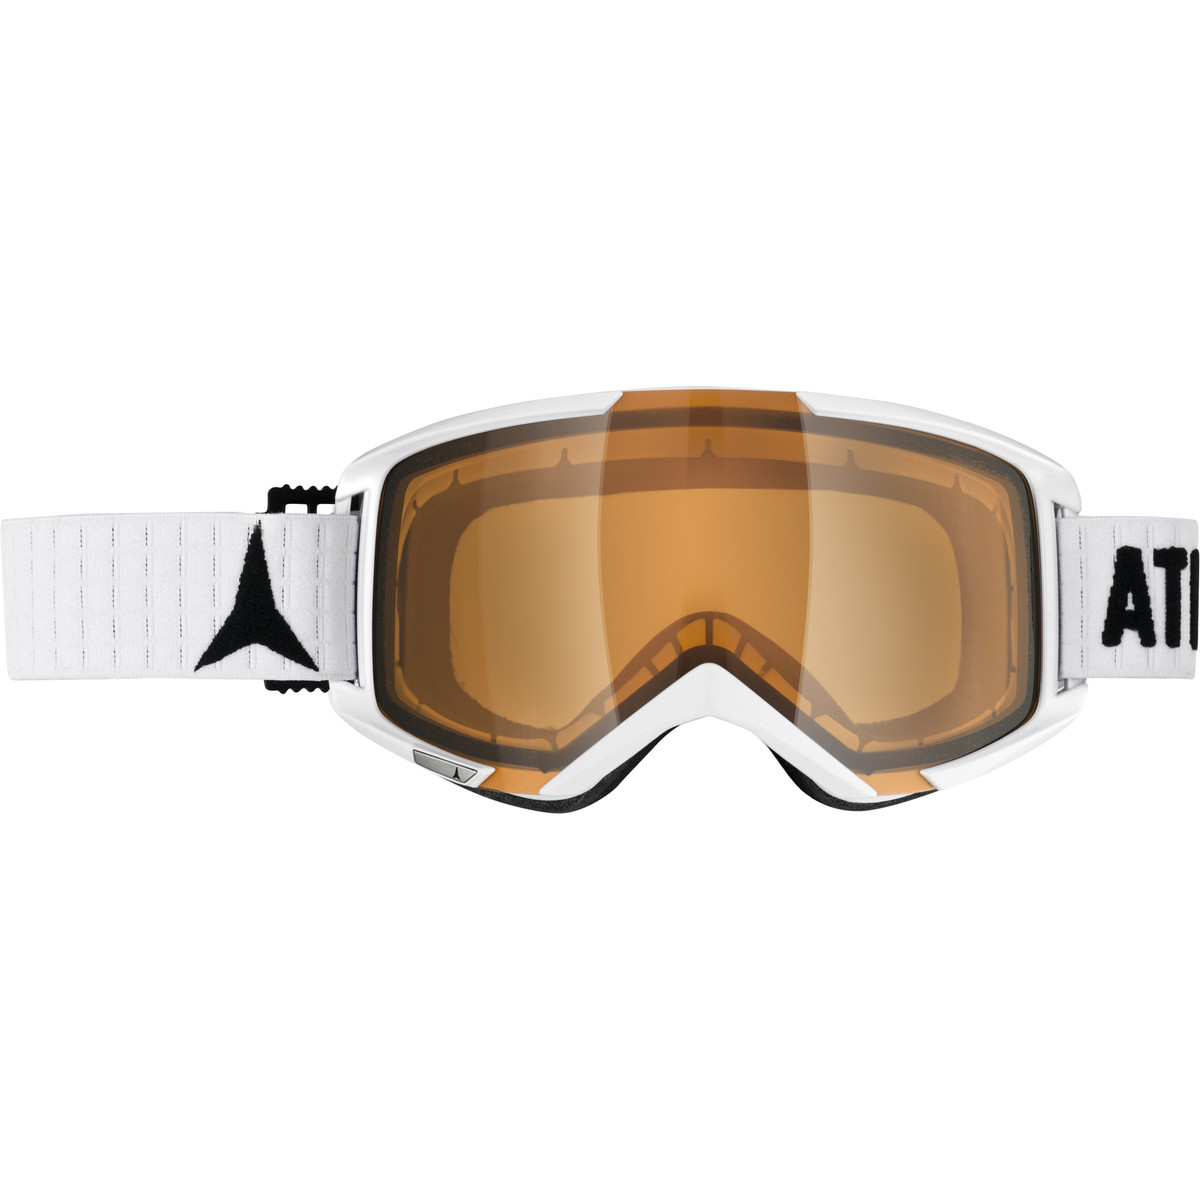 photo of a Atomic goggle